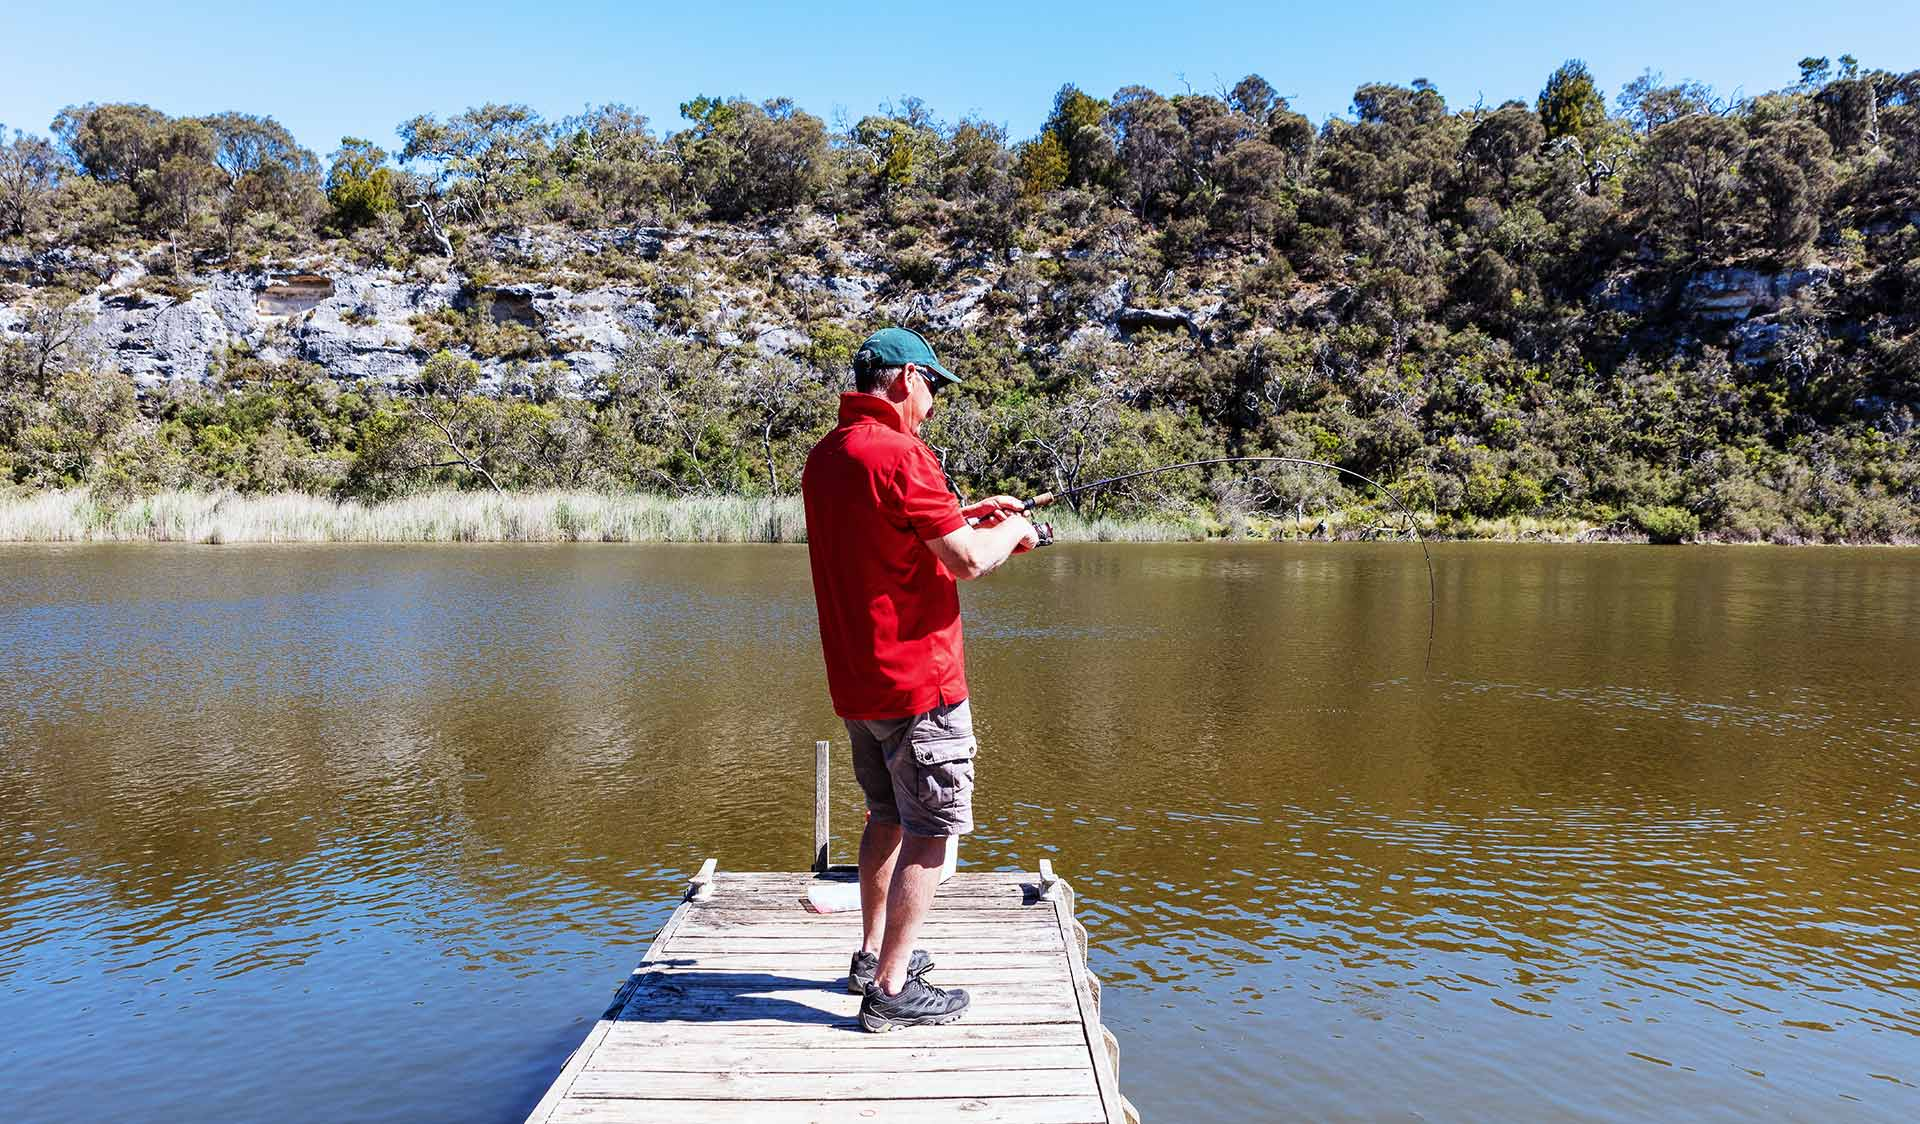 A man fishes from a jetty in the Glenelg River.